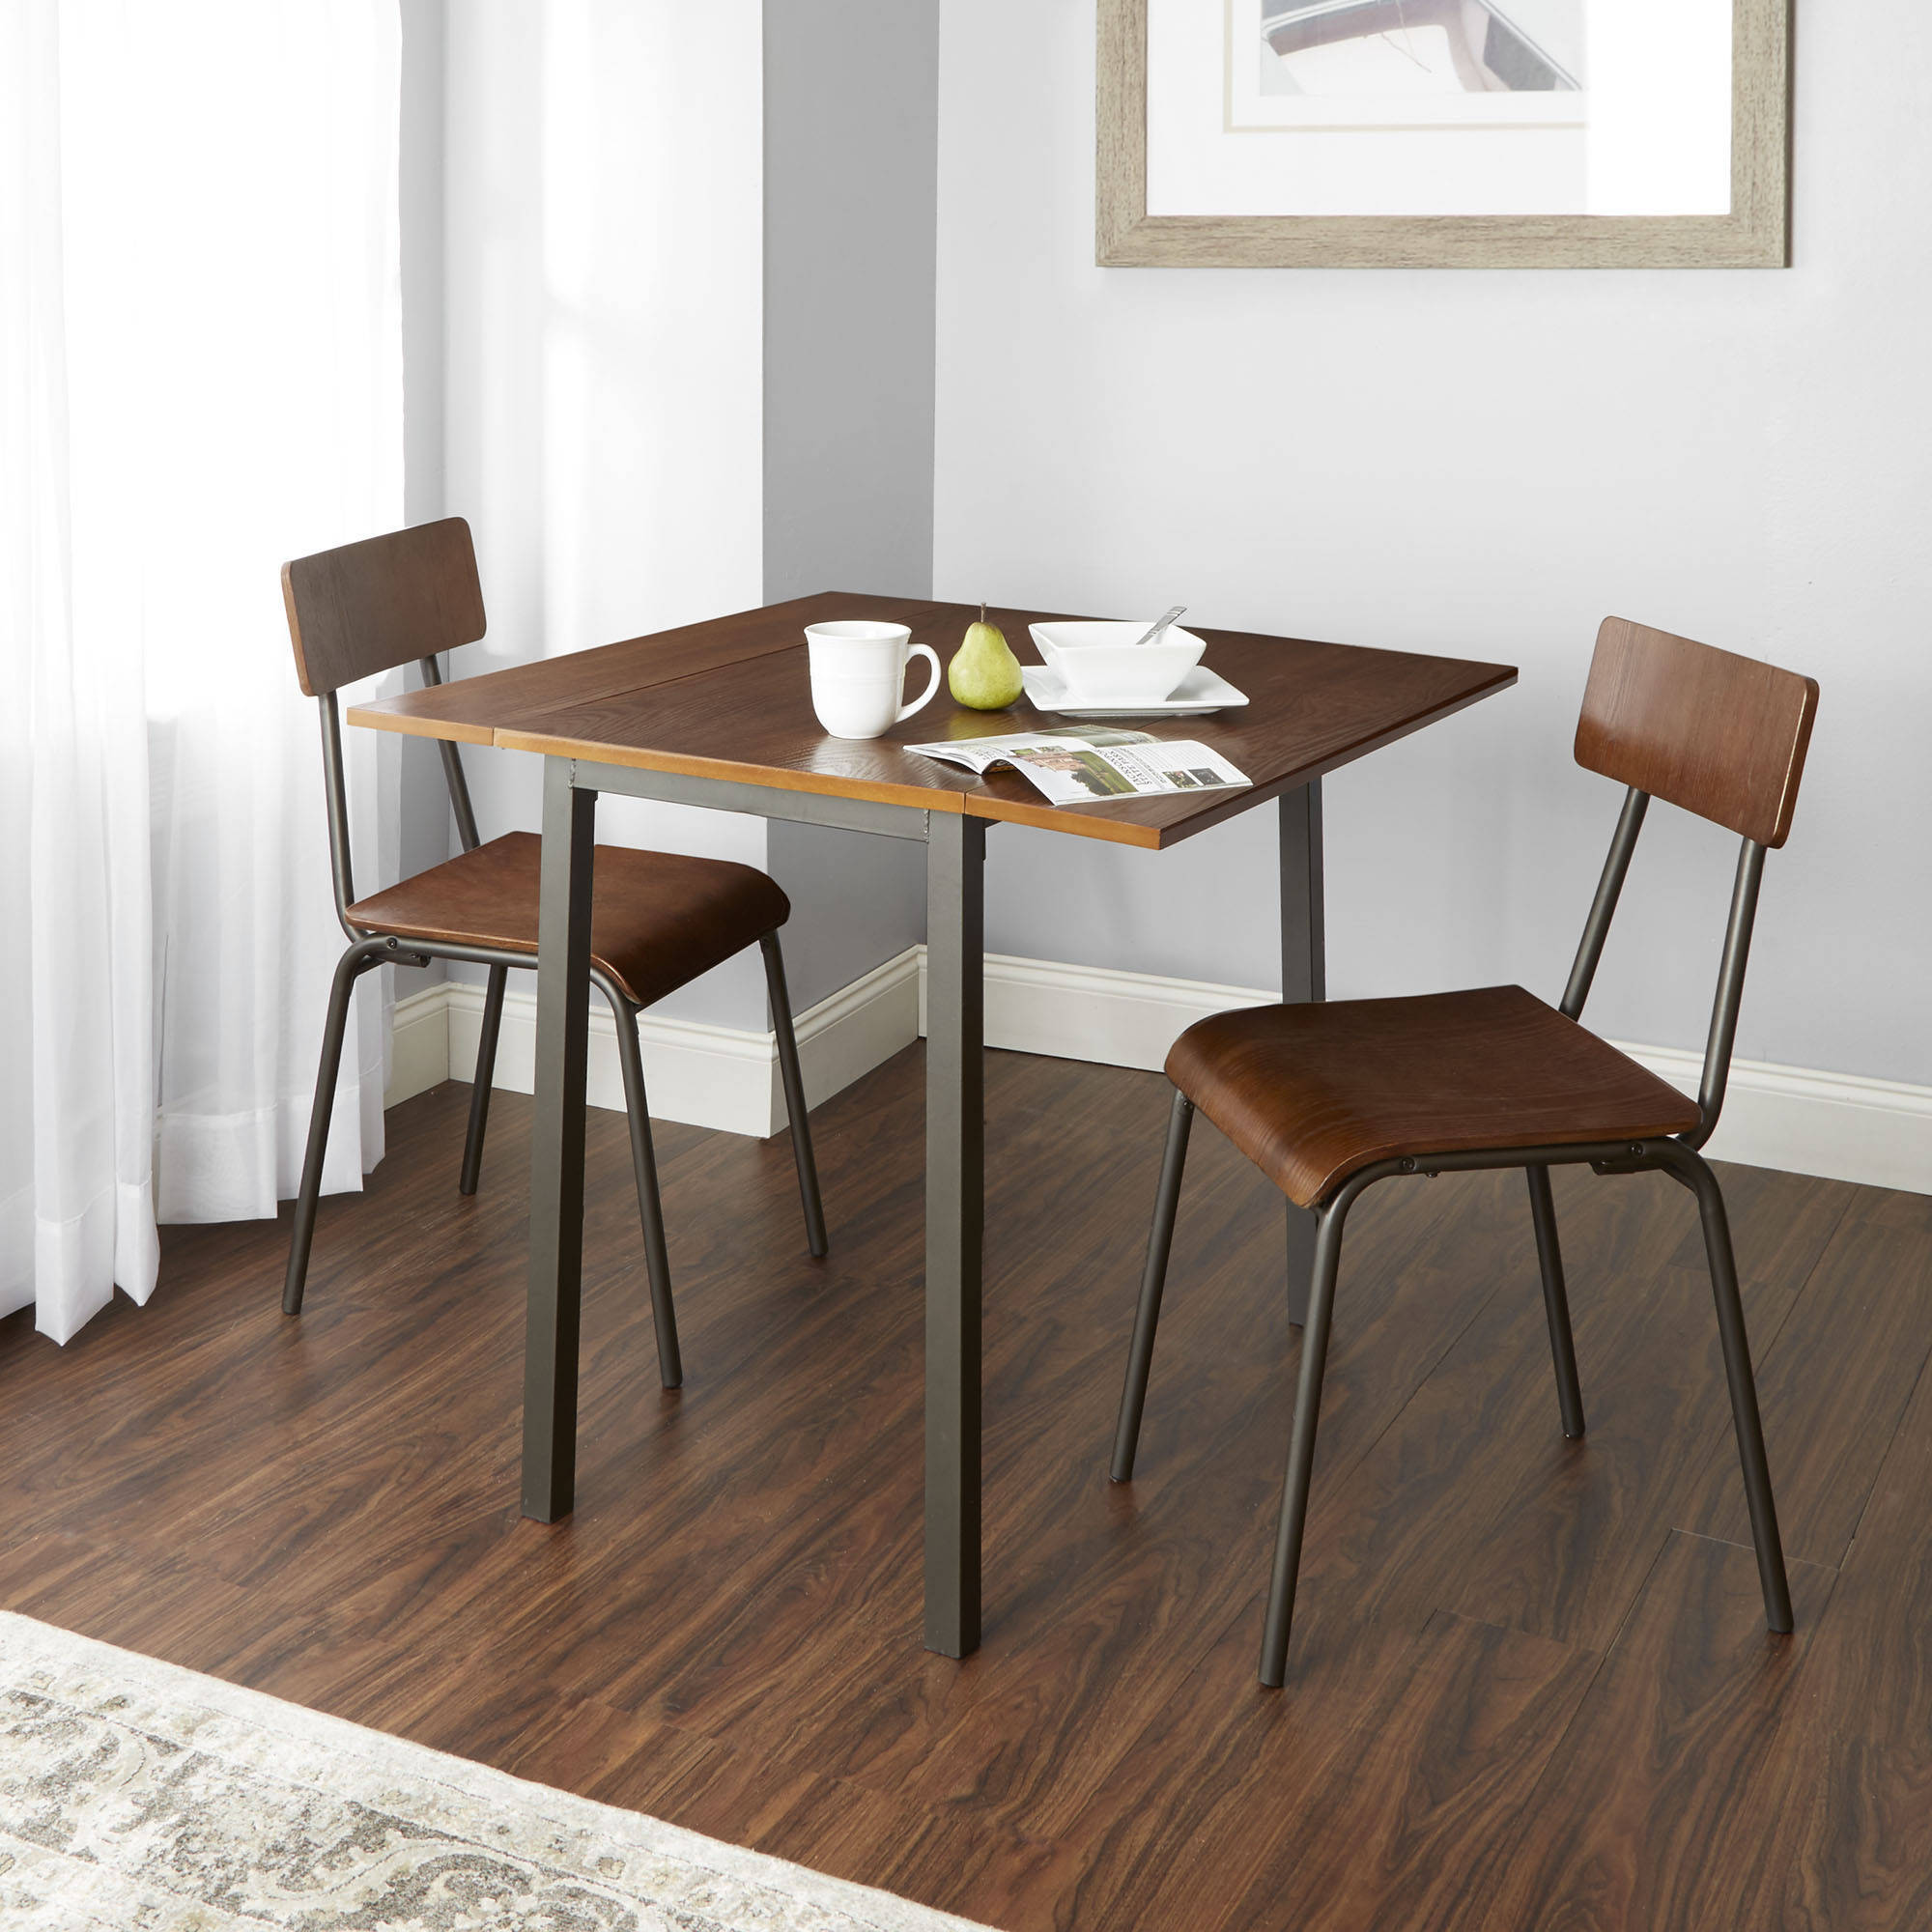 Better Homes and Gardens Berkeley 3-Piece Wood & Metal Dining Set